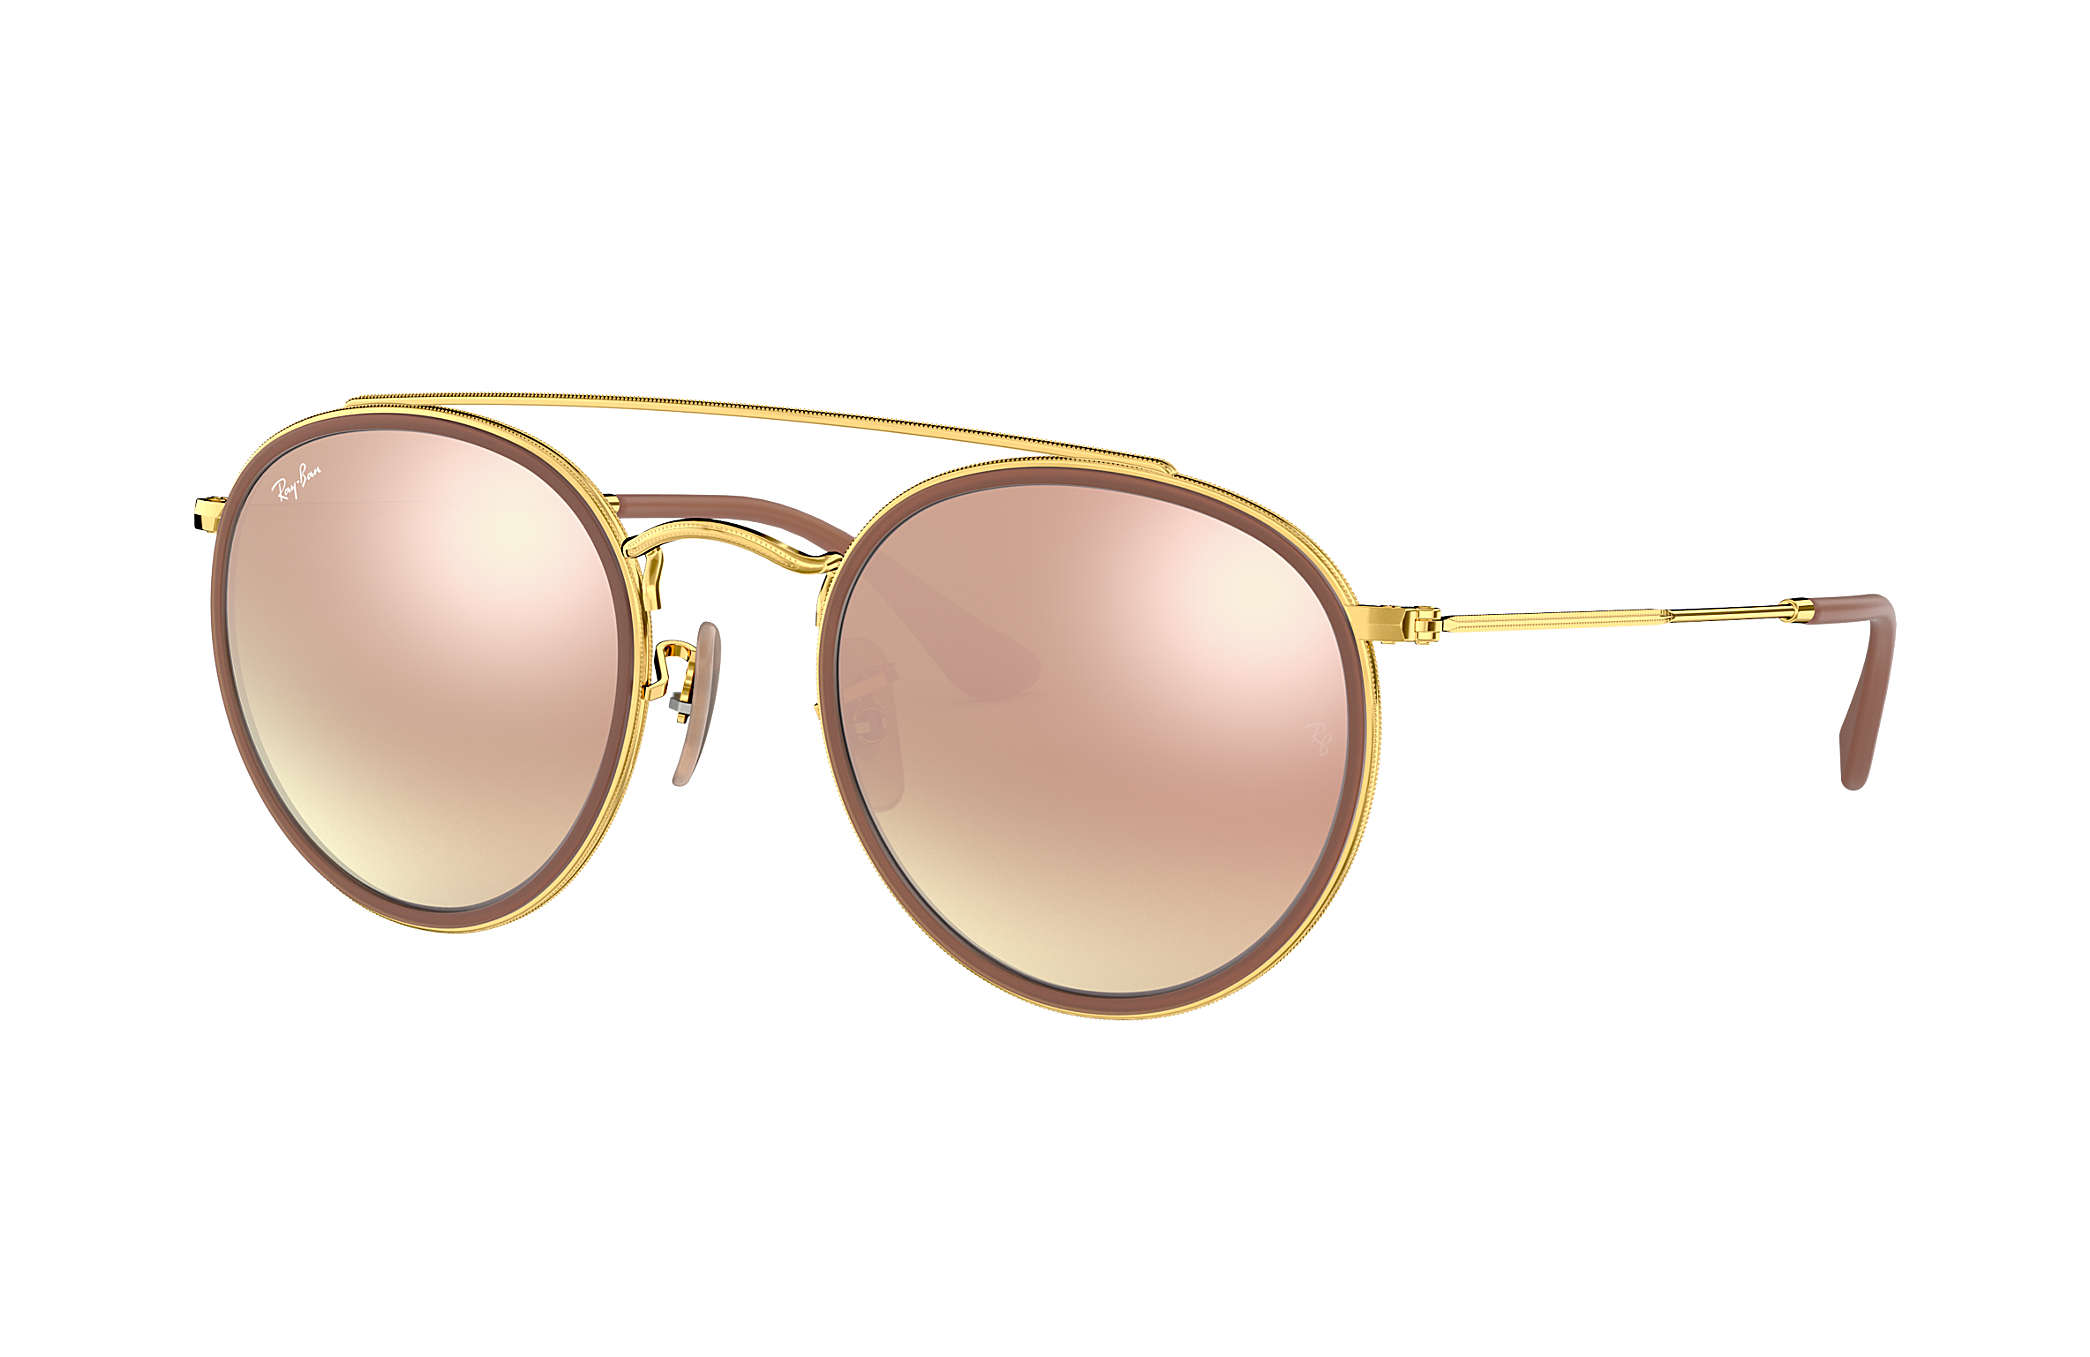 RAY BAN RAY-BAN Damen Sonnenbrille » RB3647N«, rosa, 90683F